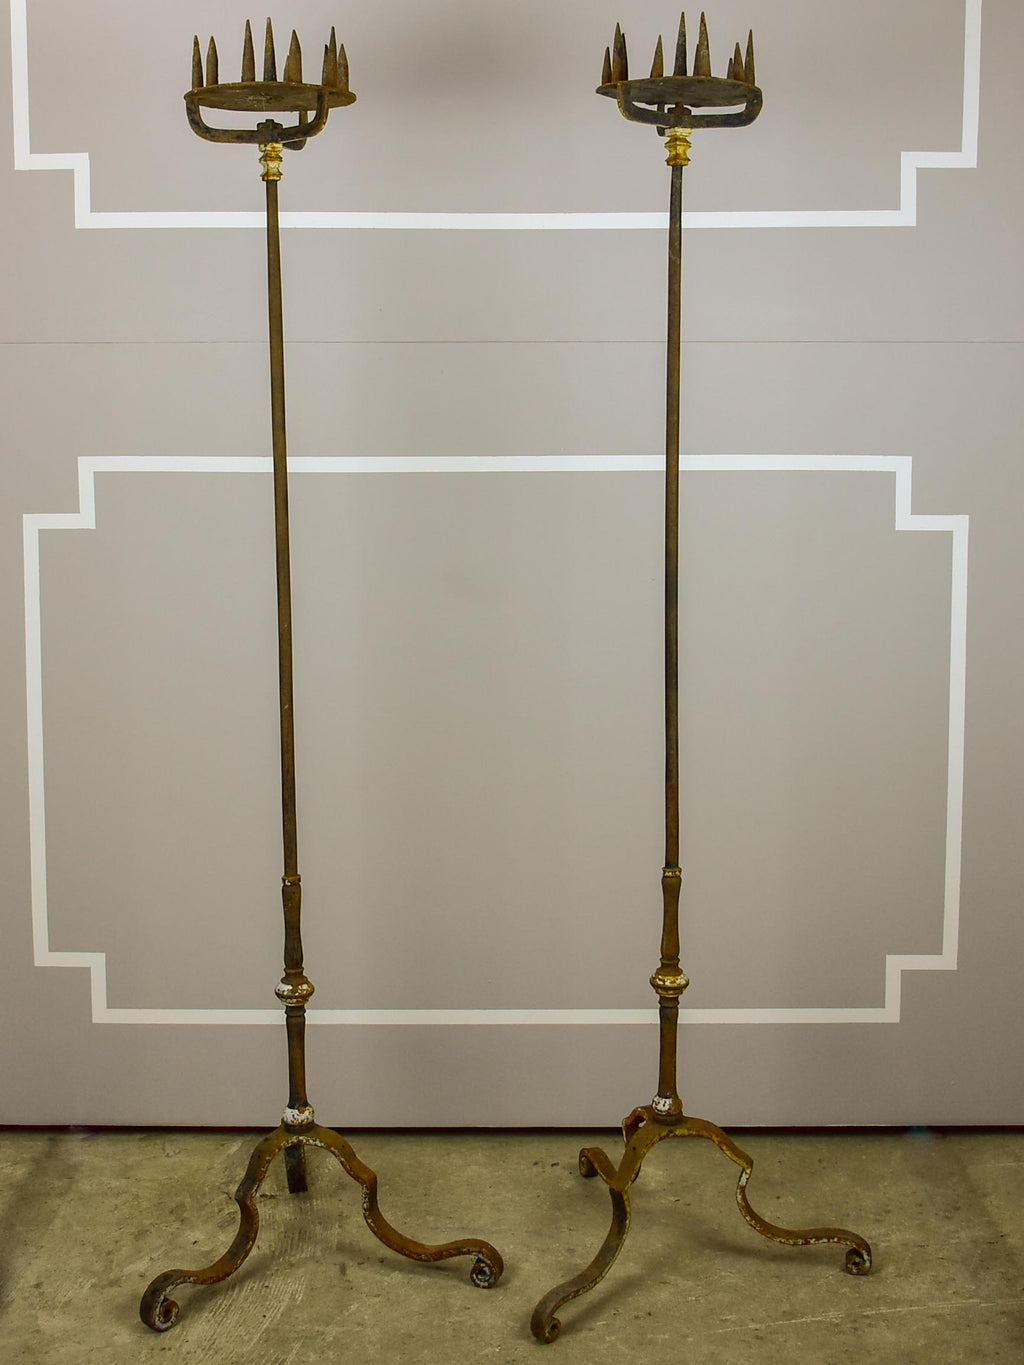 A pair of very tall 19th Century church candlesticks